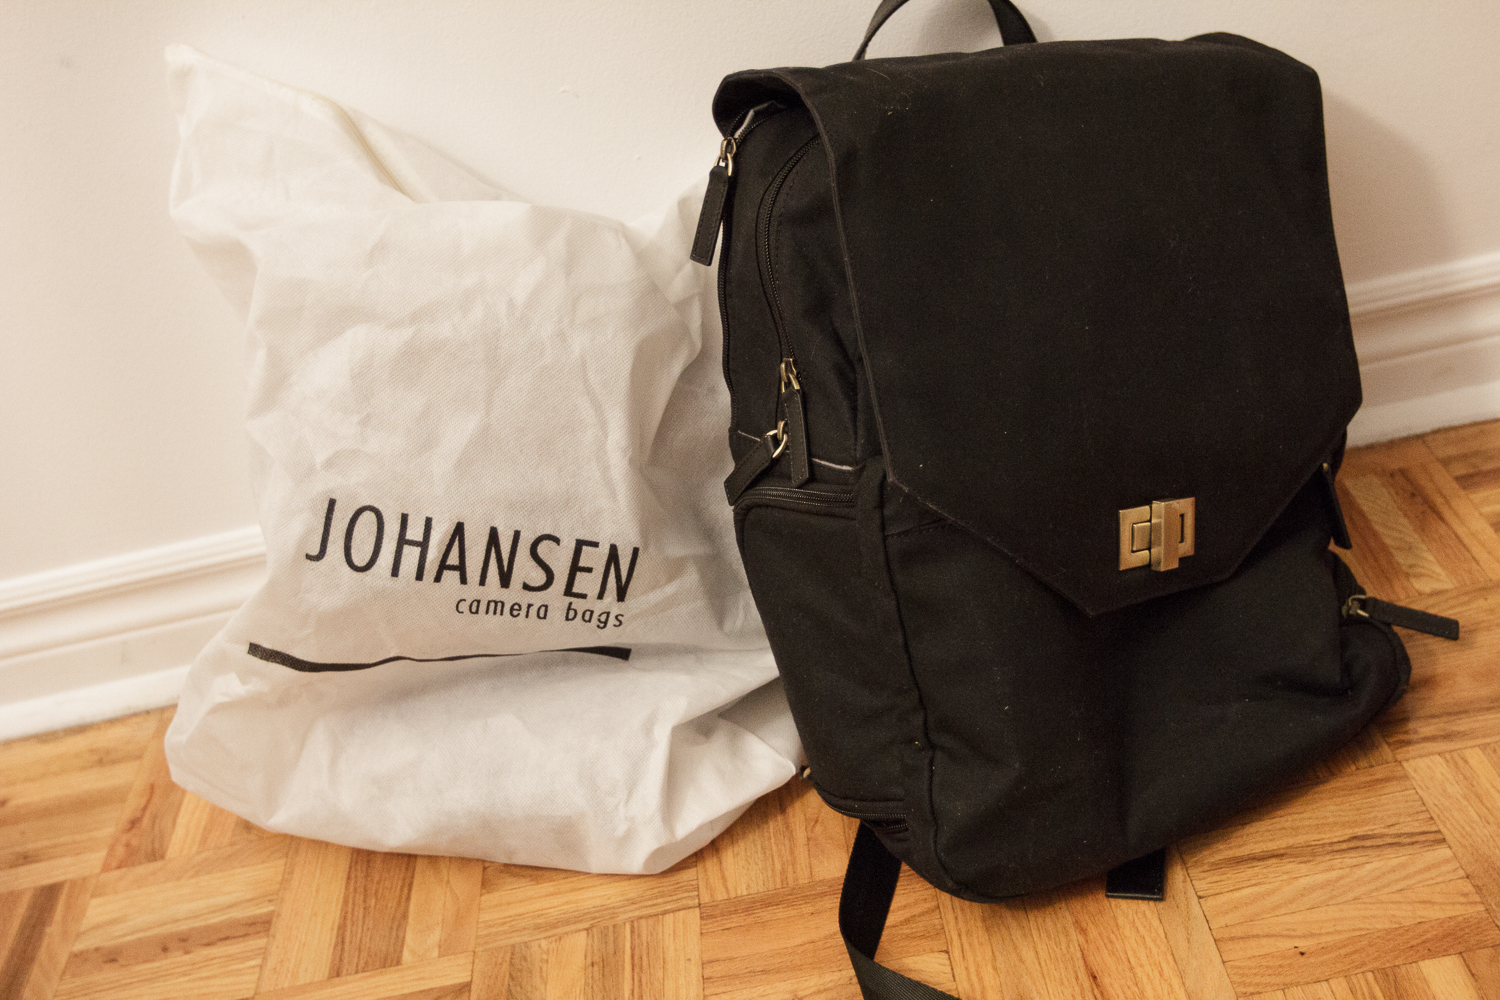 I bought myself a new camera backpack from Johansen Camera Bags. All the  bags on their website are super cute and fashionable